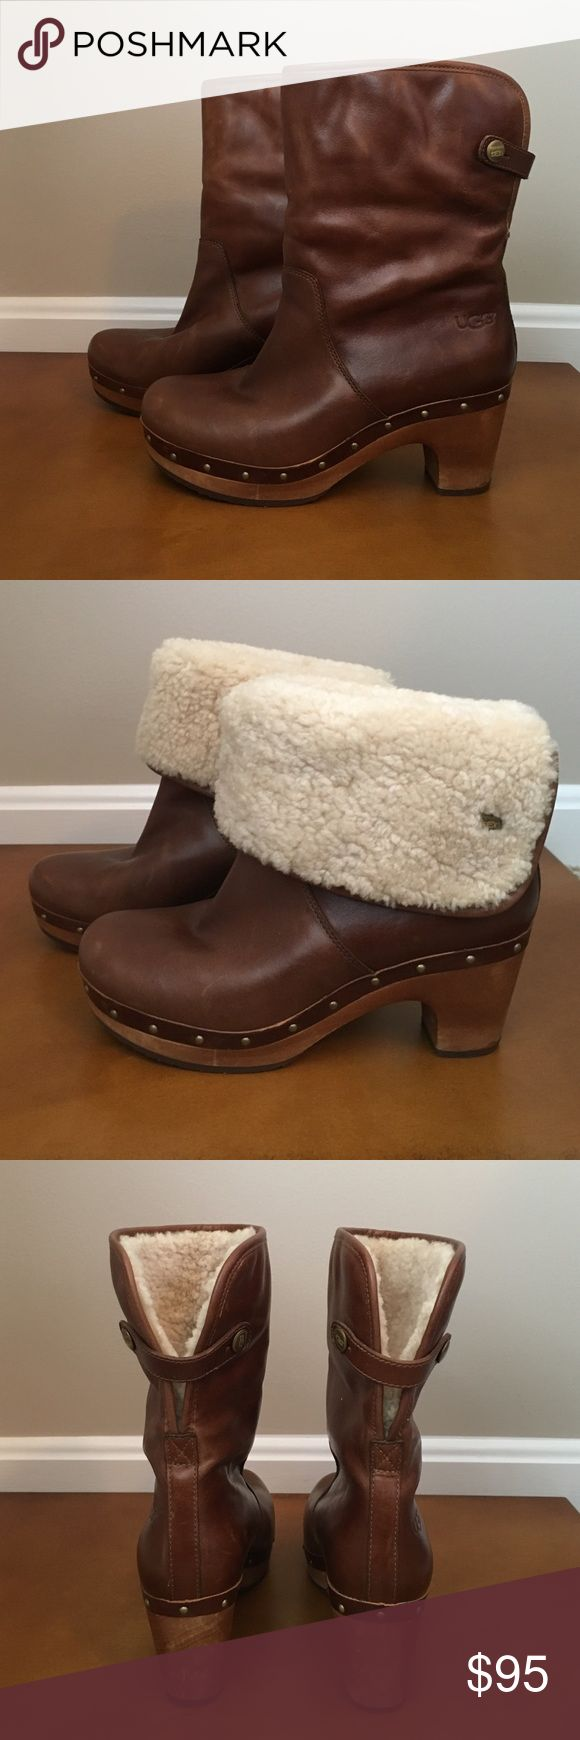 UGG Lynnea studded ankle boots. Size 6. Authentic UGG Lynnea studded ankle boots. Size 6. Excellent used condition- worn once. Boots can be folded down or worn up. Perfect fall/winter boots! UGG Shoes Ankle Boots & Booties